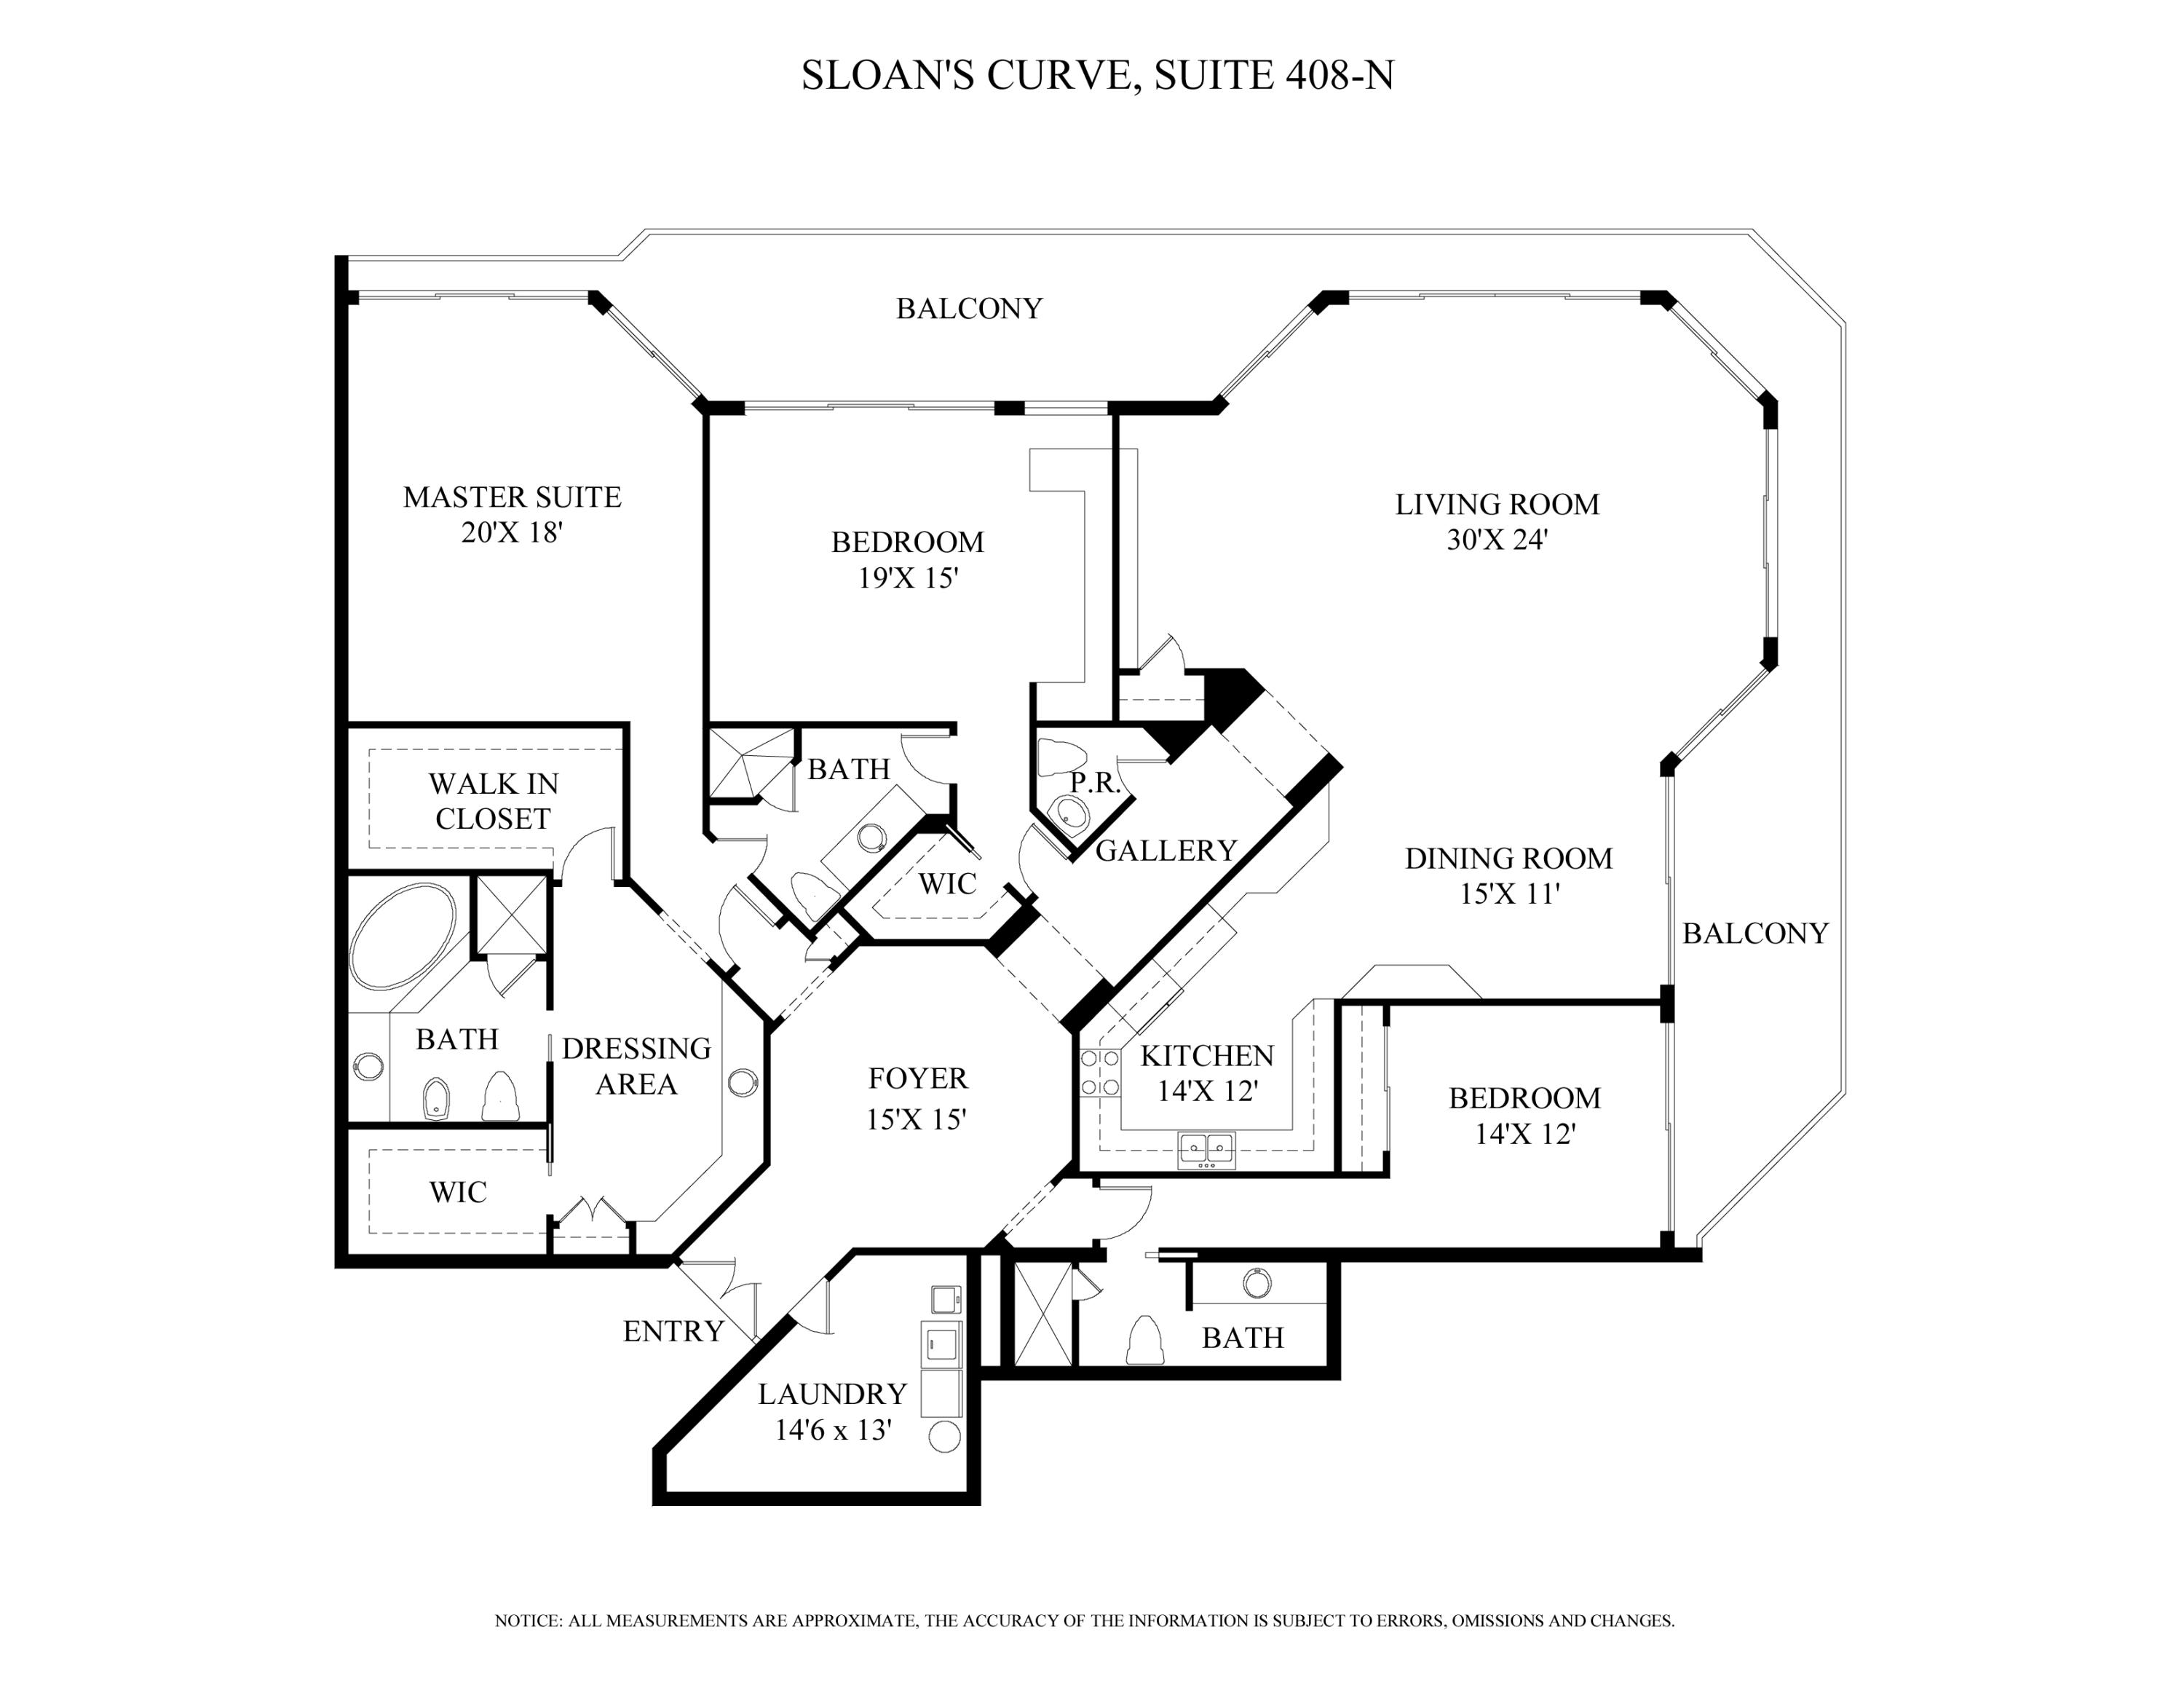 SLOANS CURVE CONDO PALM BEACH REAL ESTATE